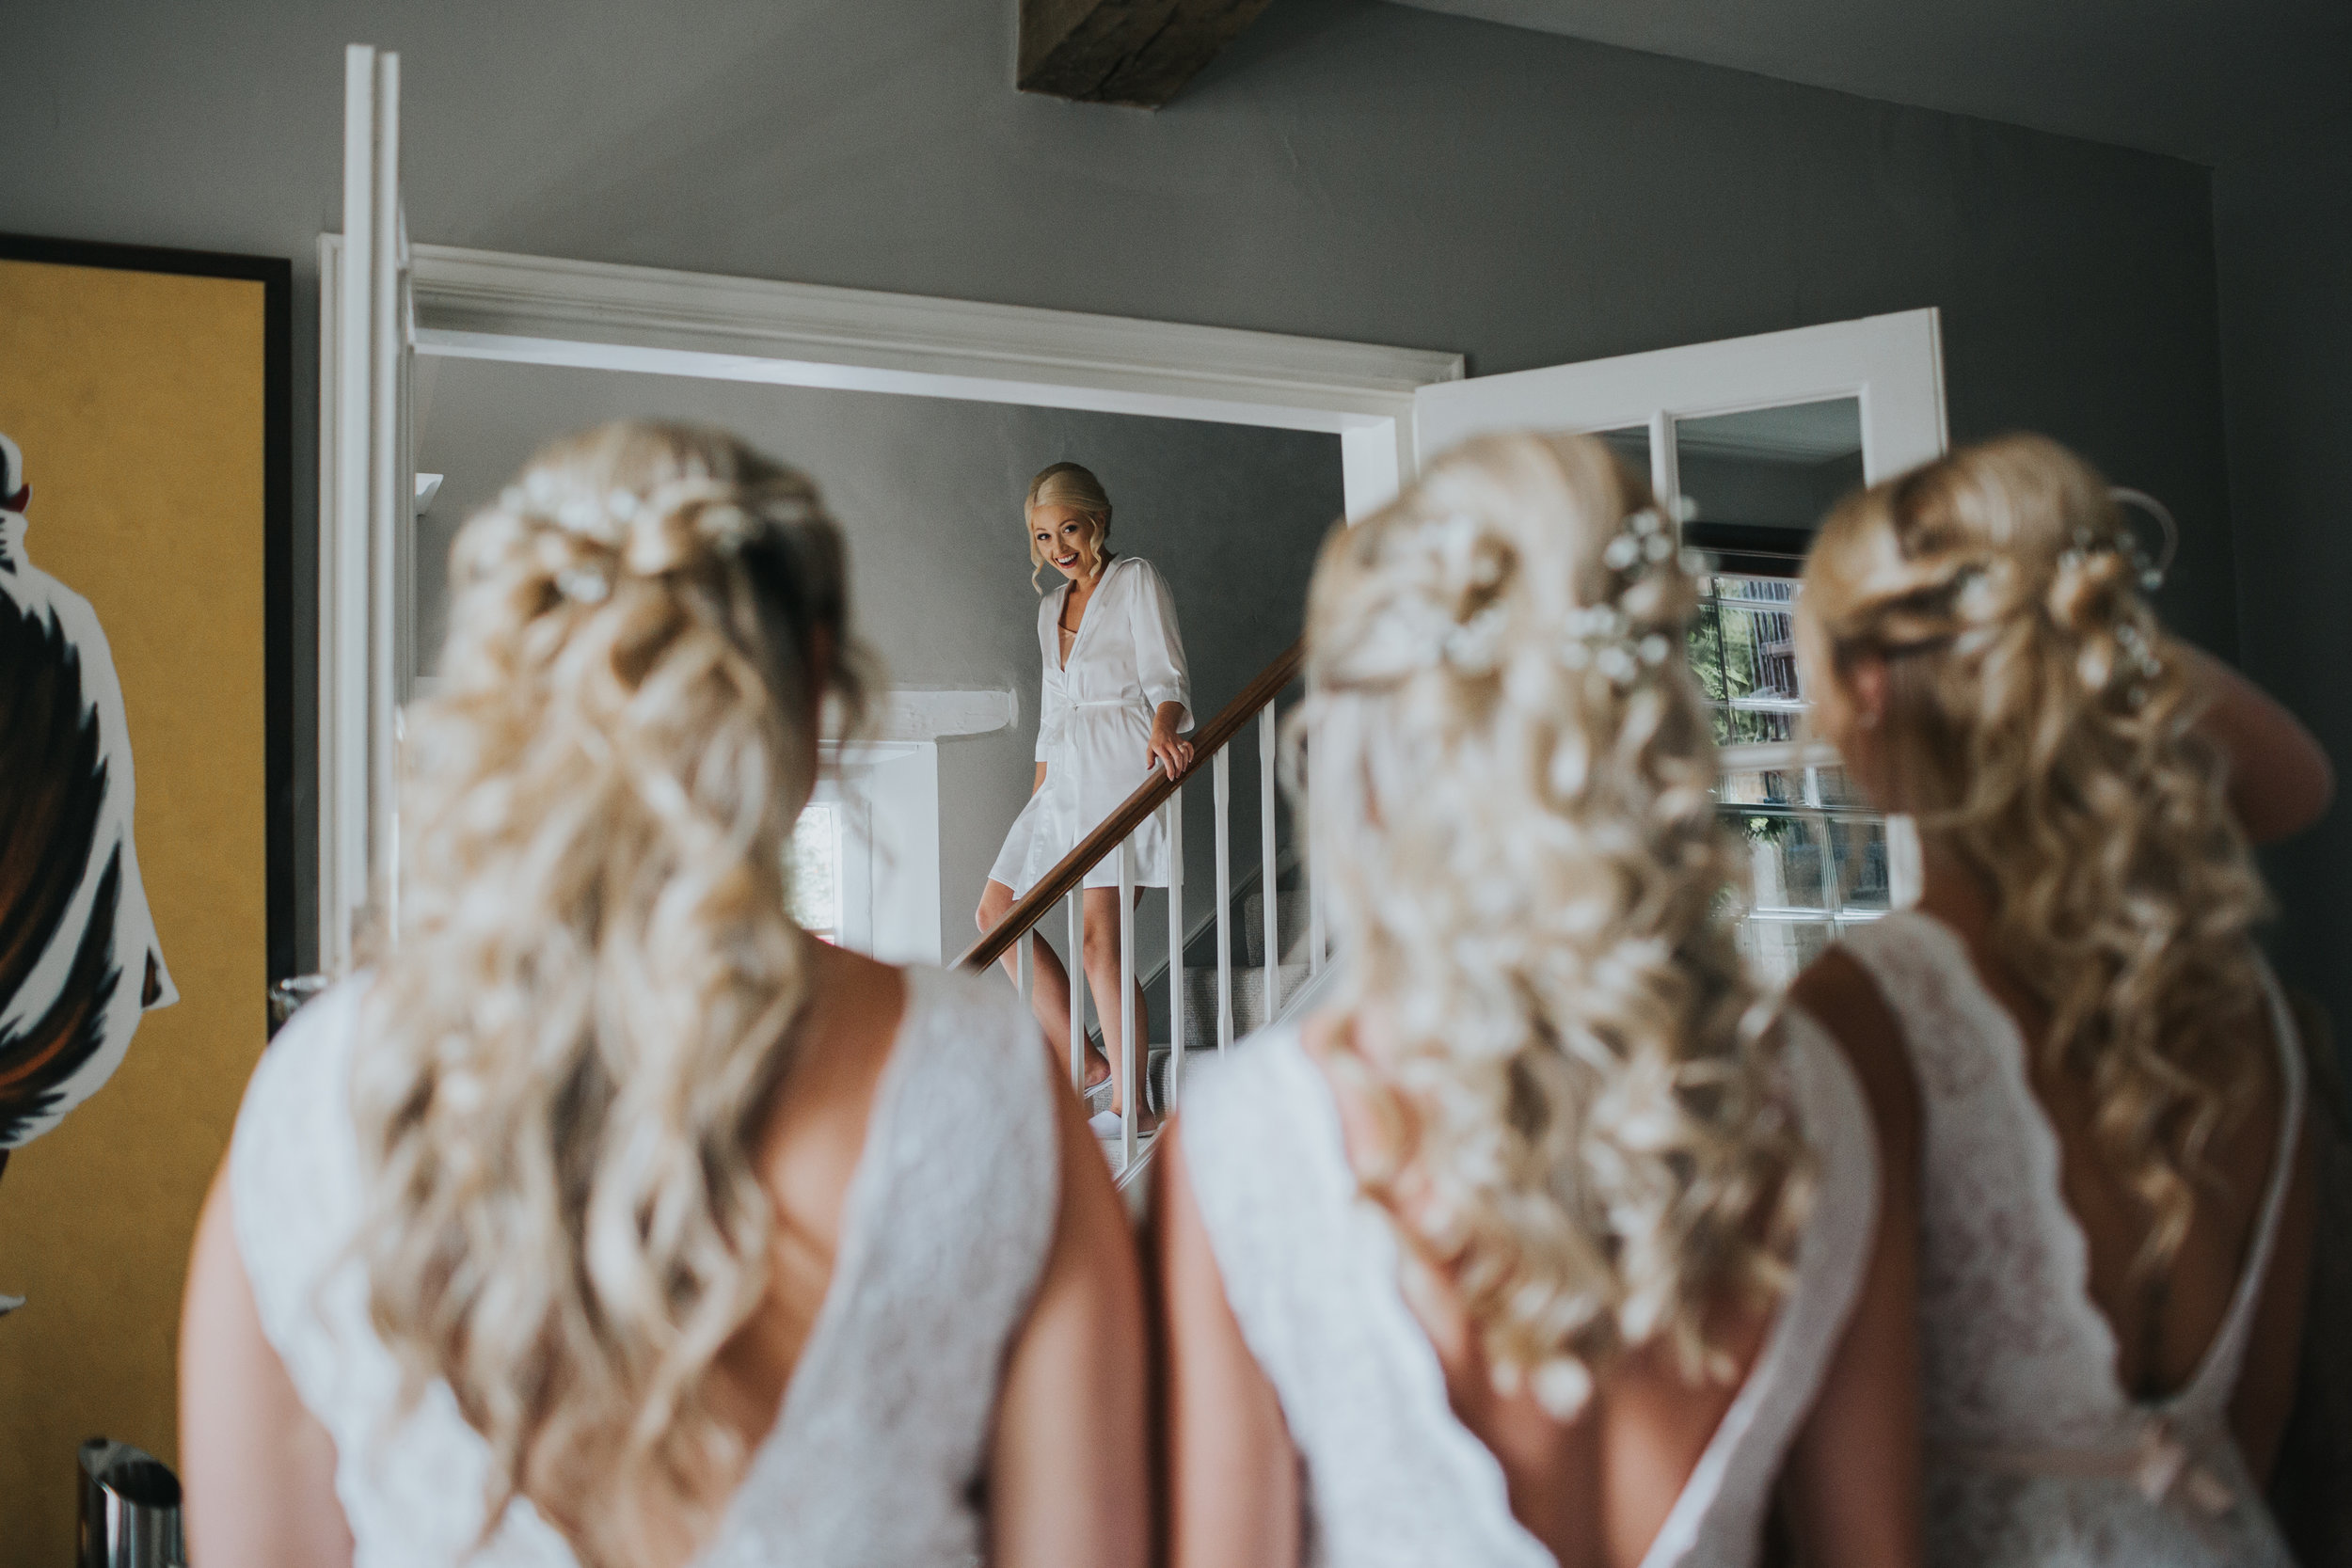 Bride comes down to see her bridesmaids in their dresses for the first time.